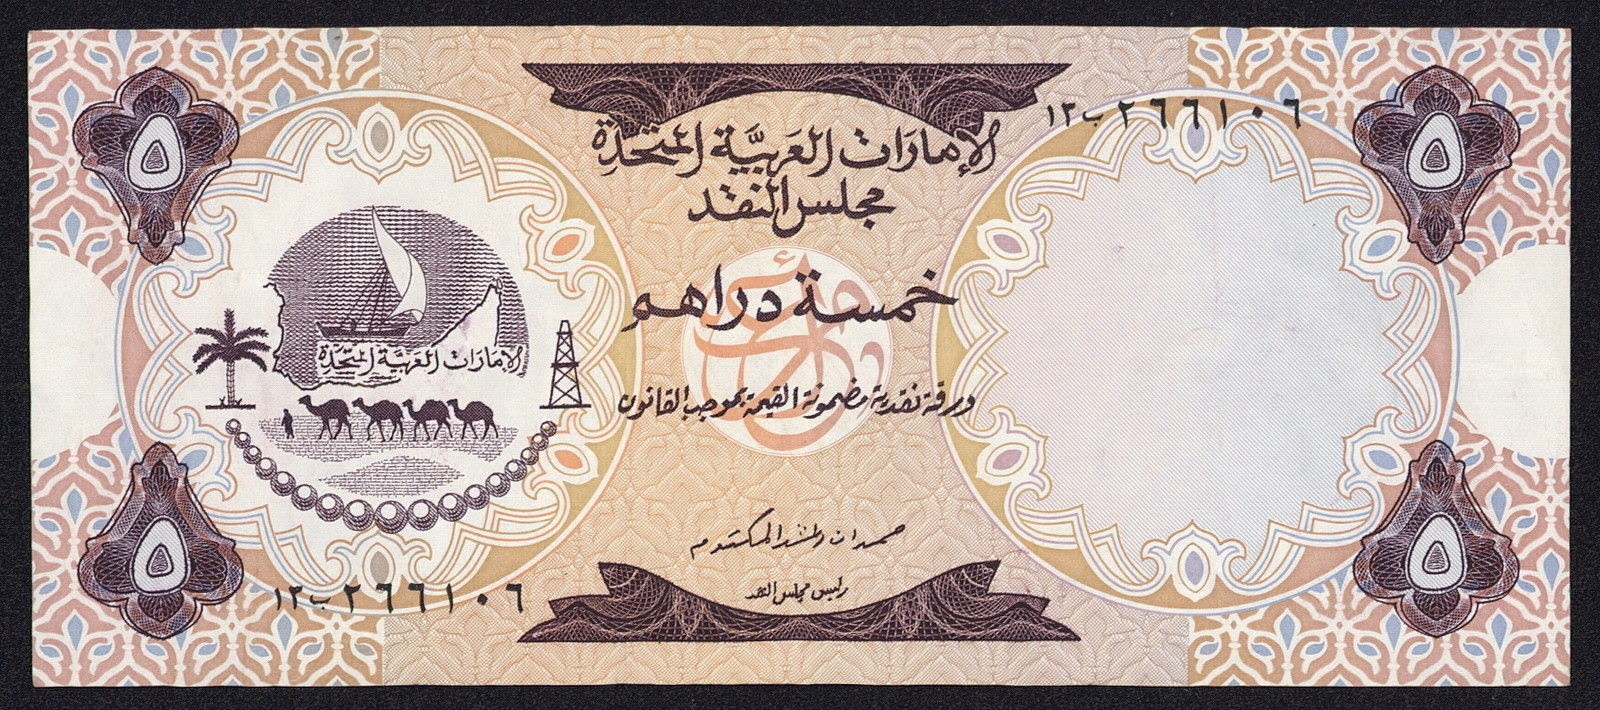 United Arab Emirates 5 Dirhams banknote 1973|World ... |Arab Emirates Currency